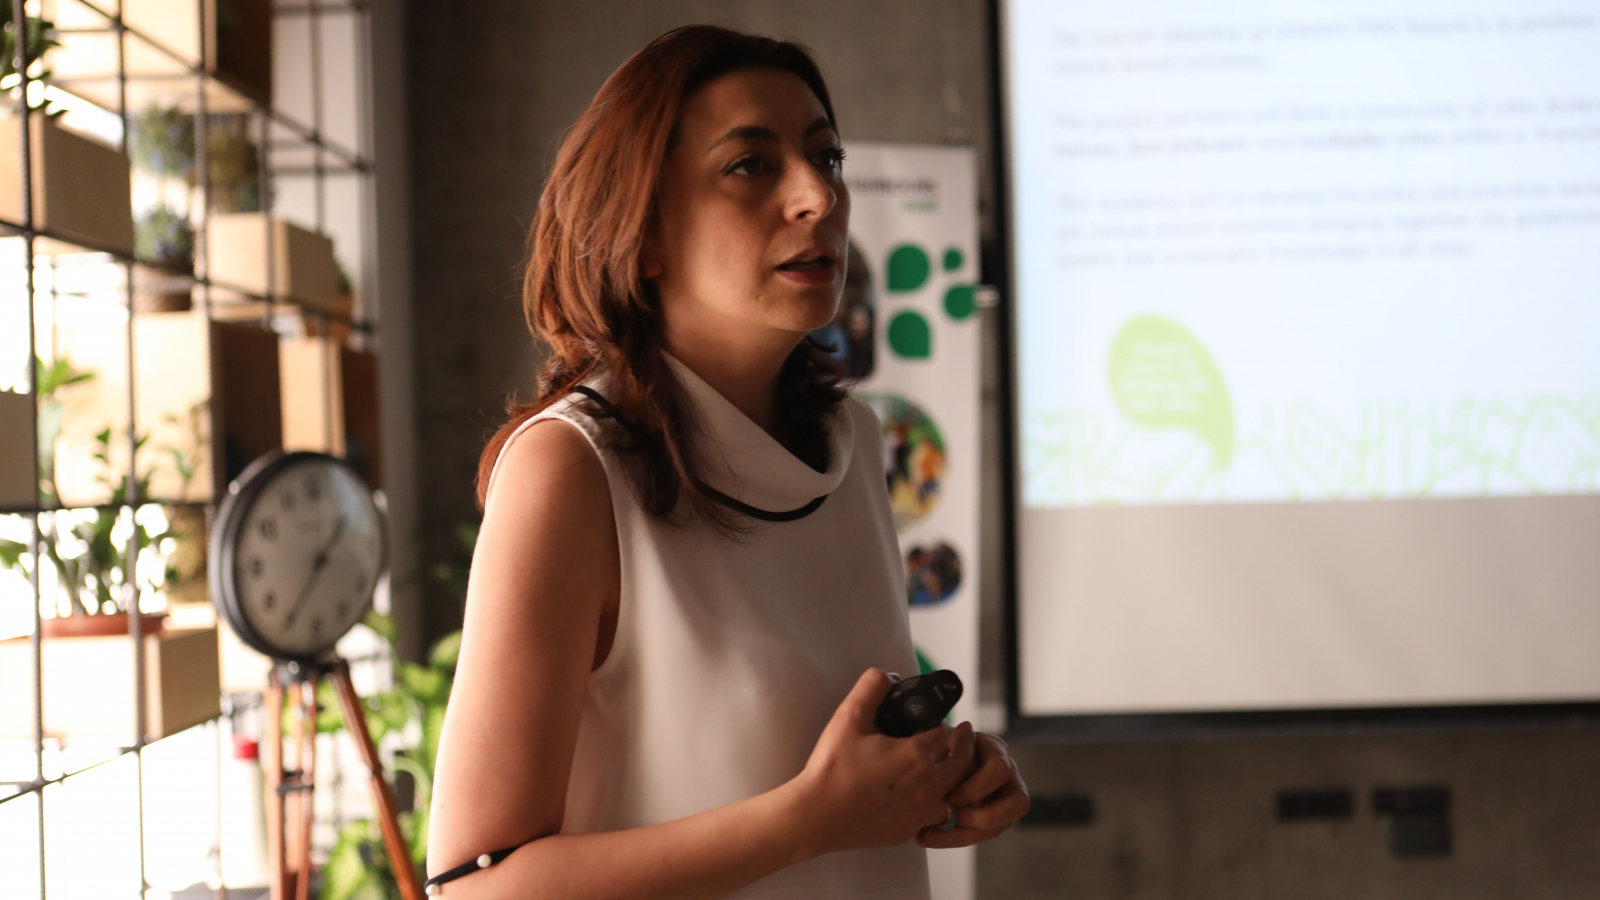 Lilit Sahakyan, vice director for research at the Centre for Environmental and Noospheric Research